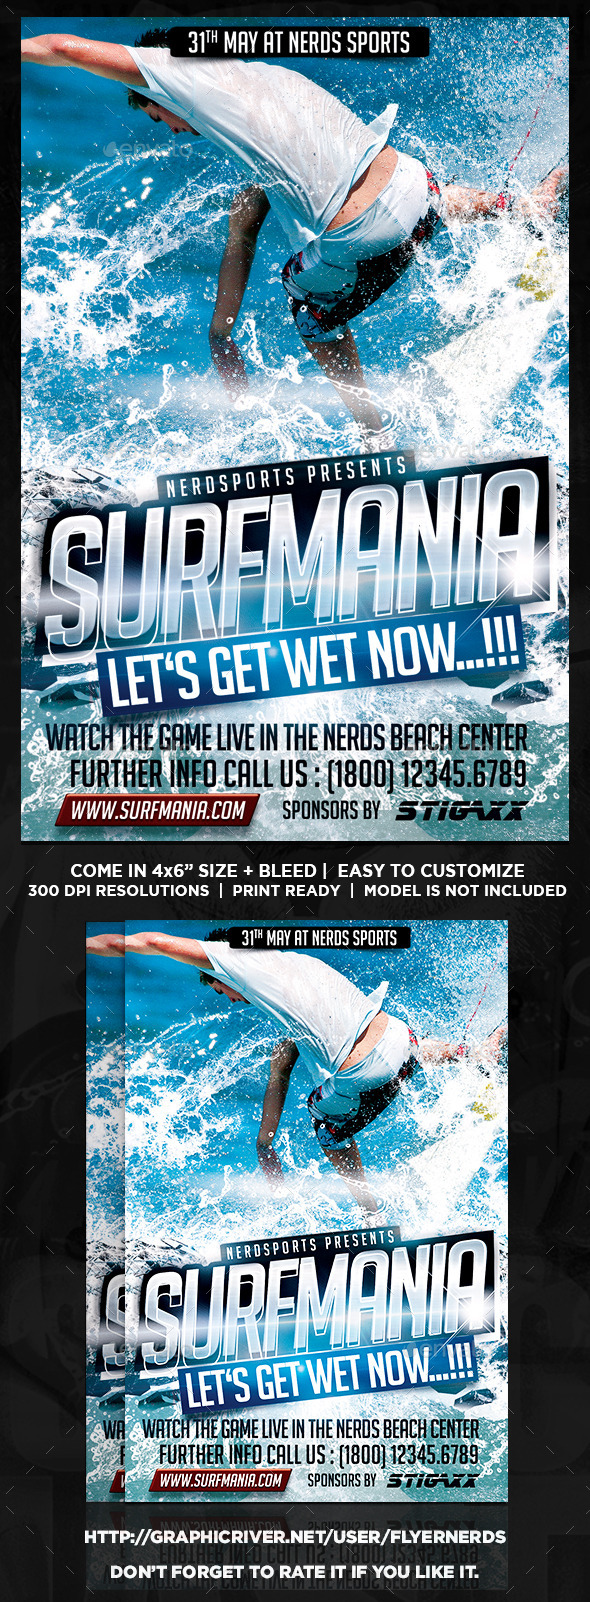 GraphicRiver Surfer Mania Sports Flyer 10748238